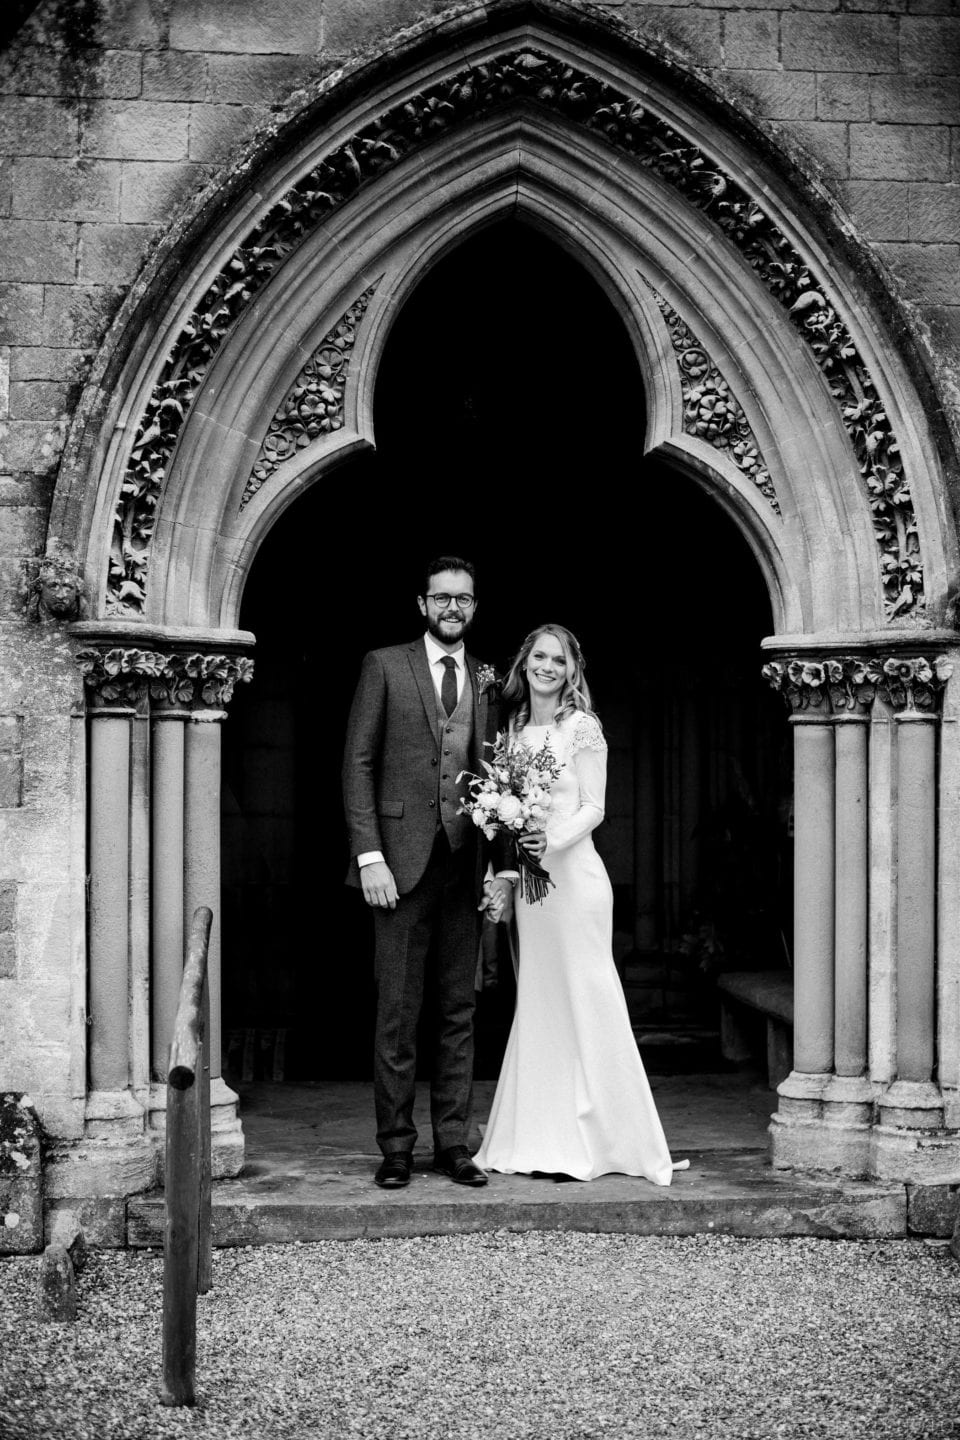 The new Mr & Mrs!